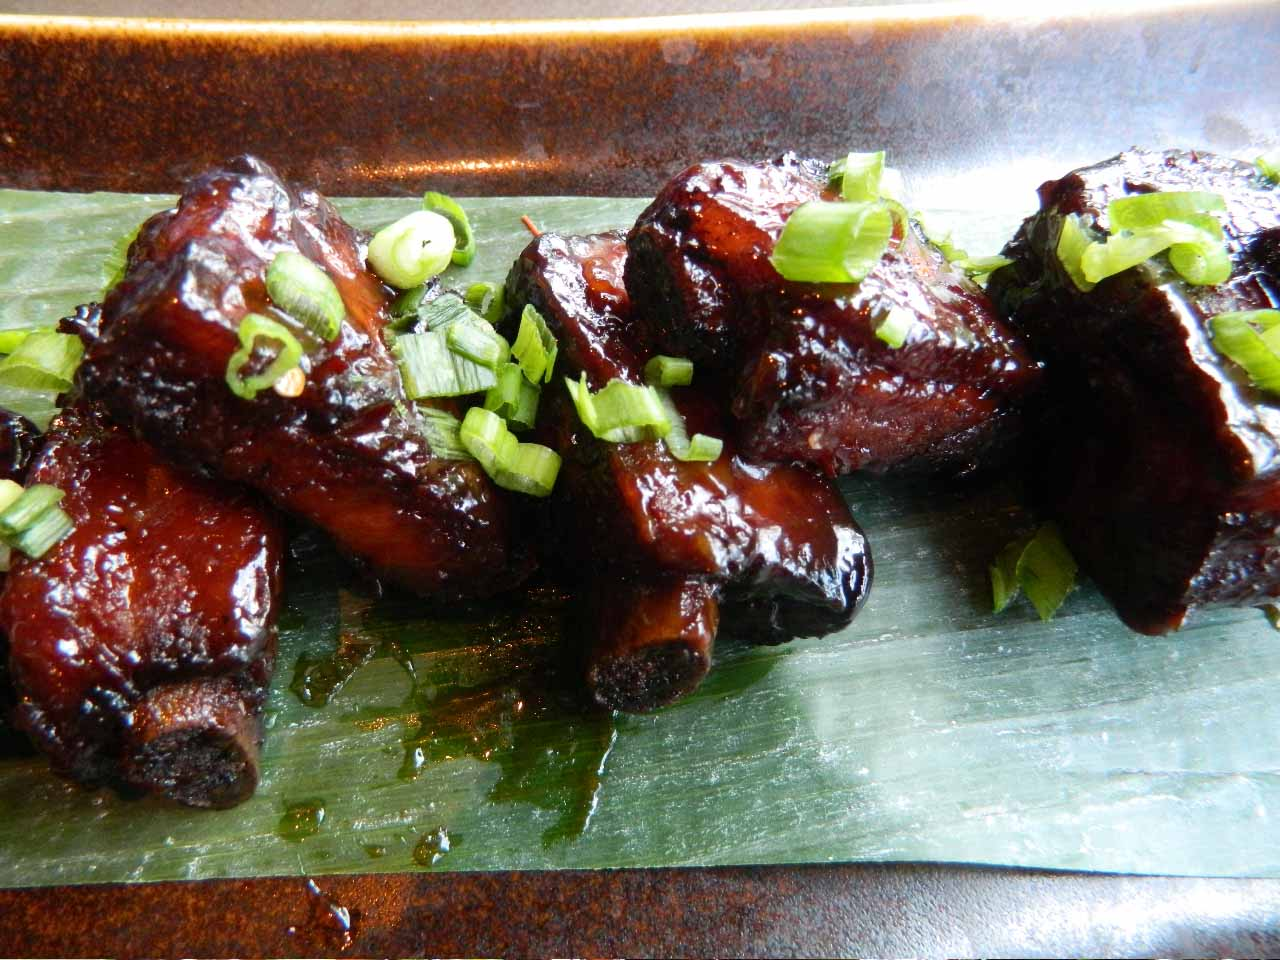 Lacquered BBQ ribs in a chili-caramel-sesame marinade shows off the chef's penchant for sweet at Rock Sugar. (Photo by John Blanchette.)